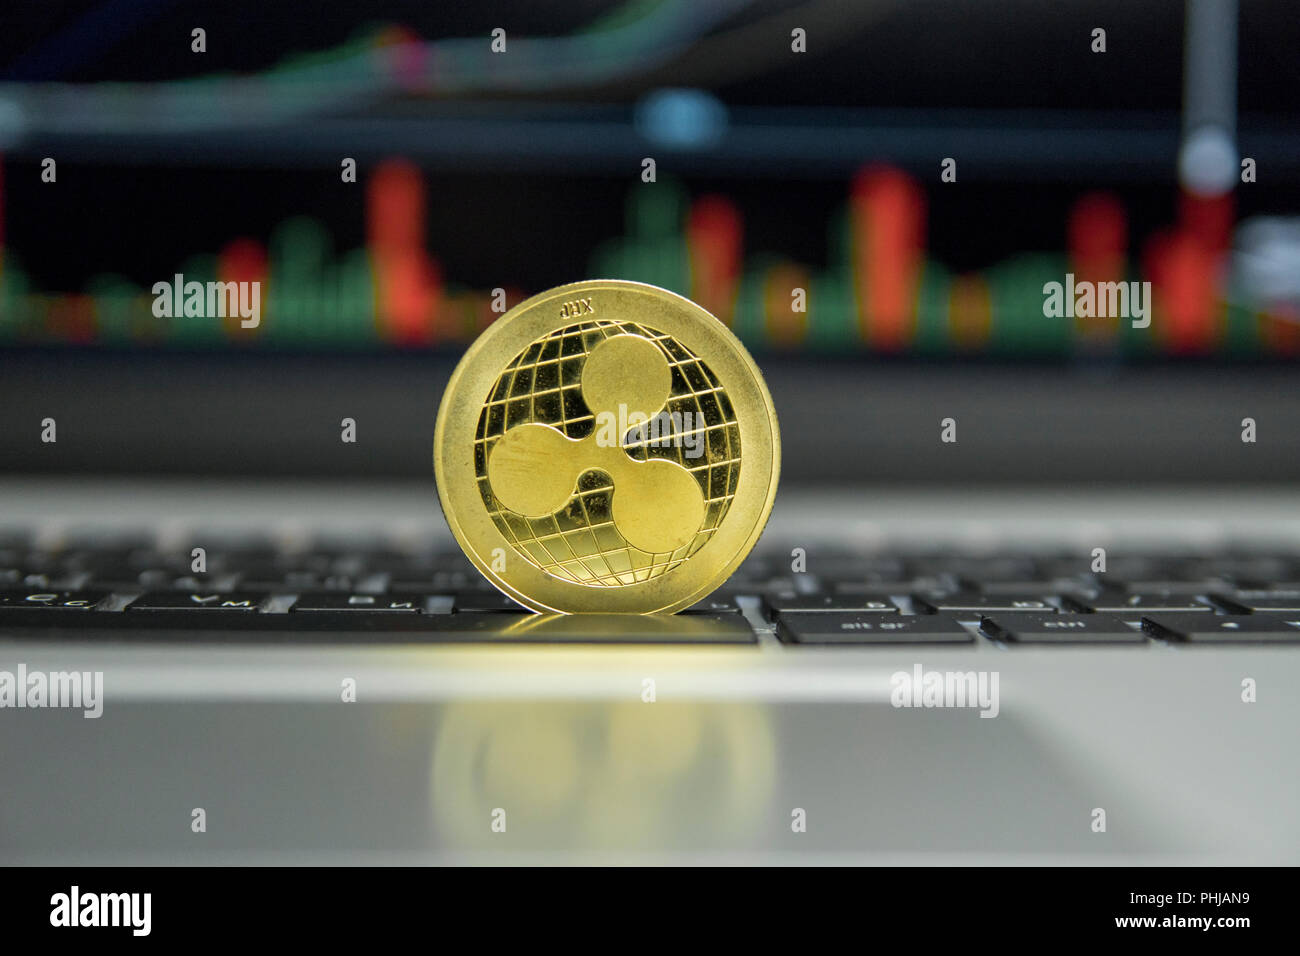 hight resolution of golden ripple coin on a black keyboard of silver laptop and diagram chart graph on a screen as a background virtual cryptocurrency concept